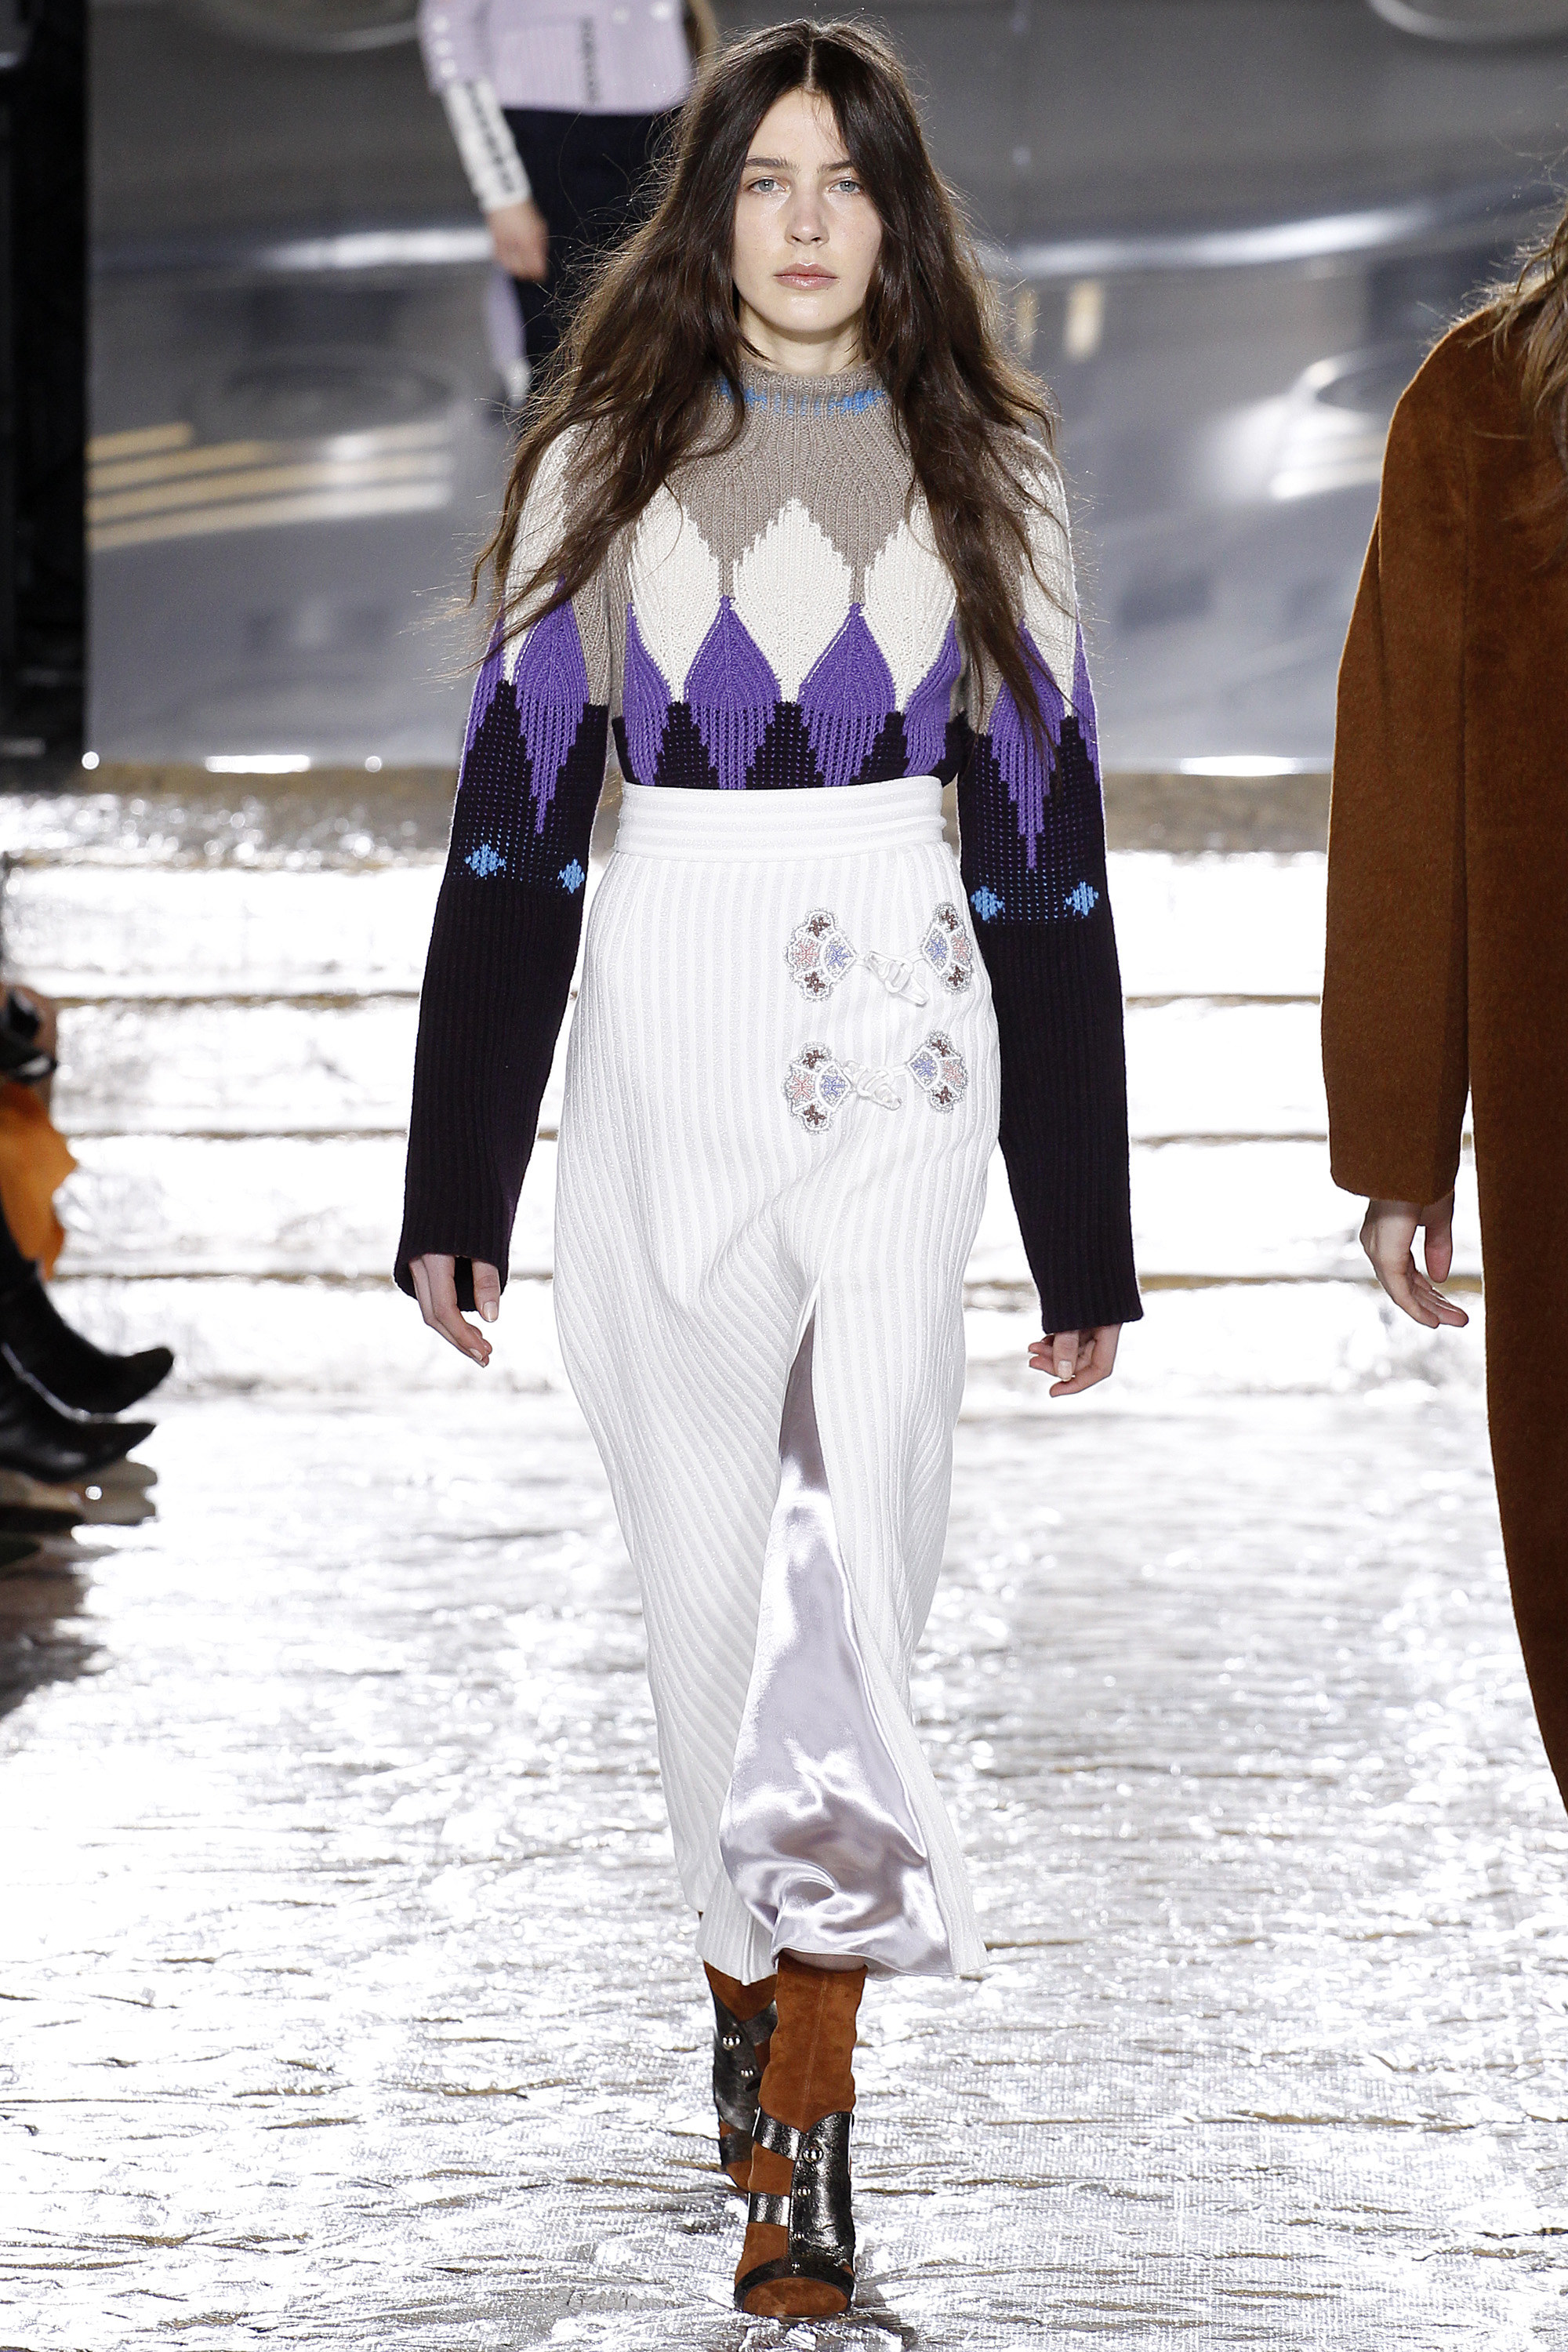 Peter-Pilotto-Autumn-Winter-Fall-2016-London-Fashion-Week-11.jpg